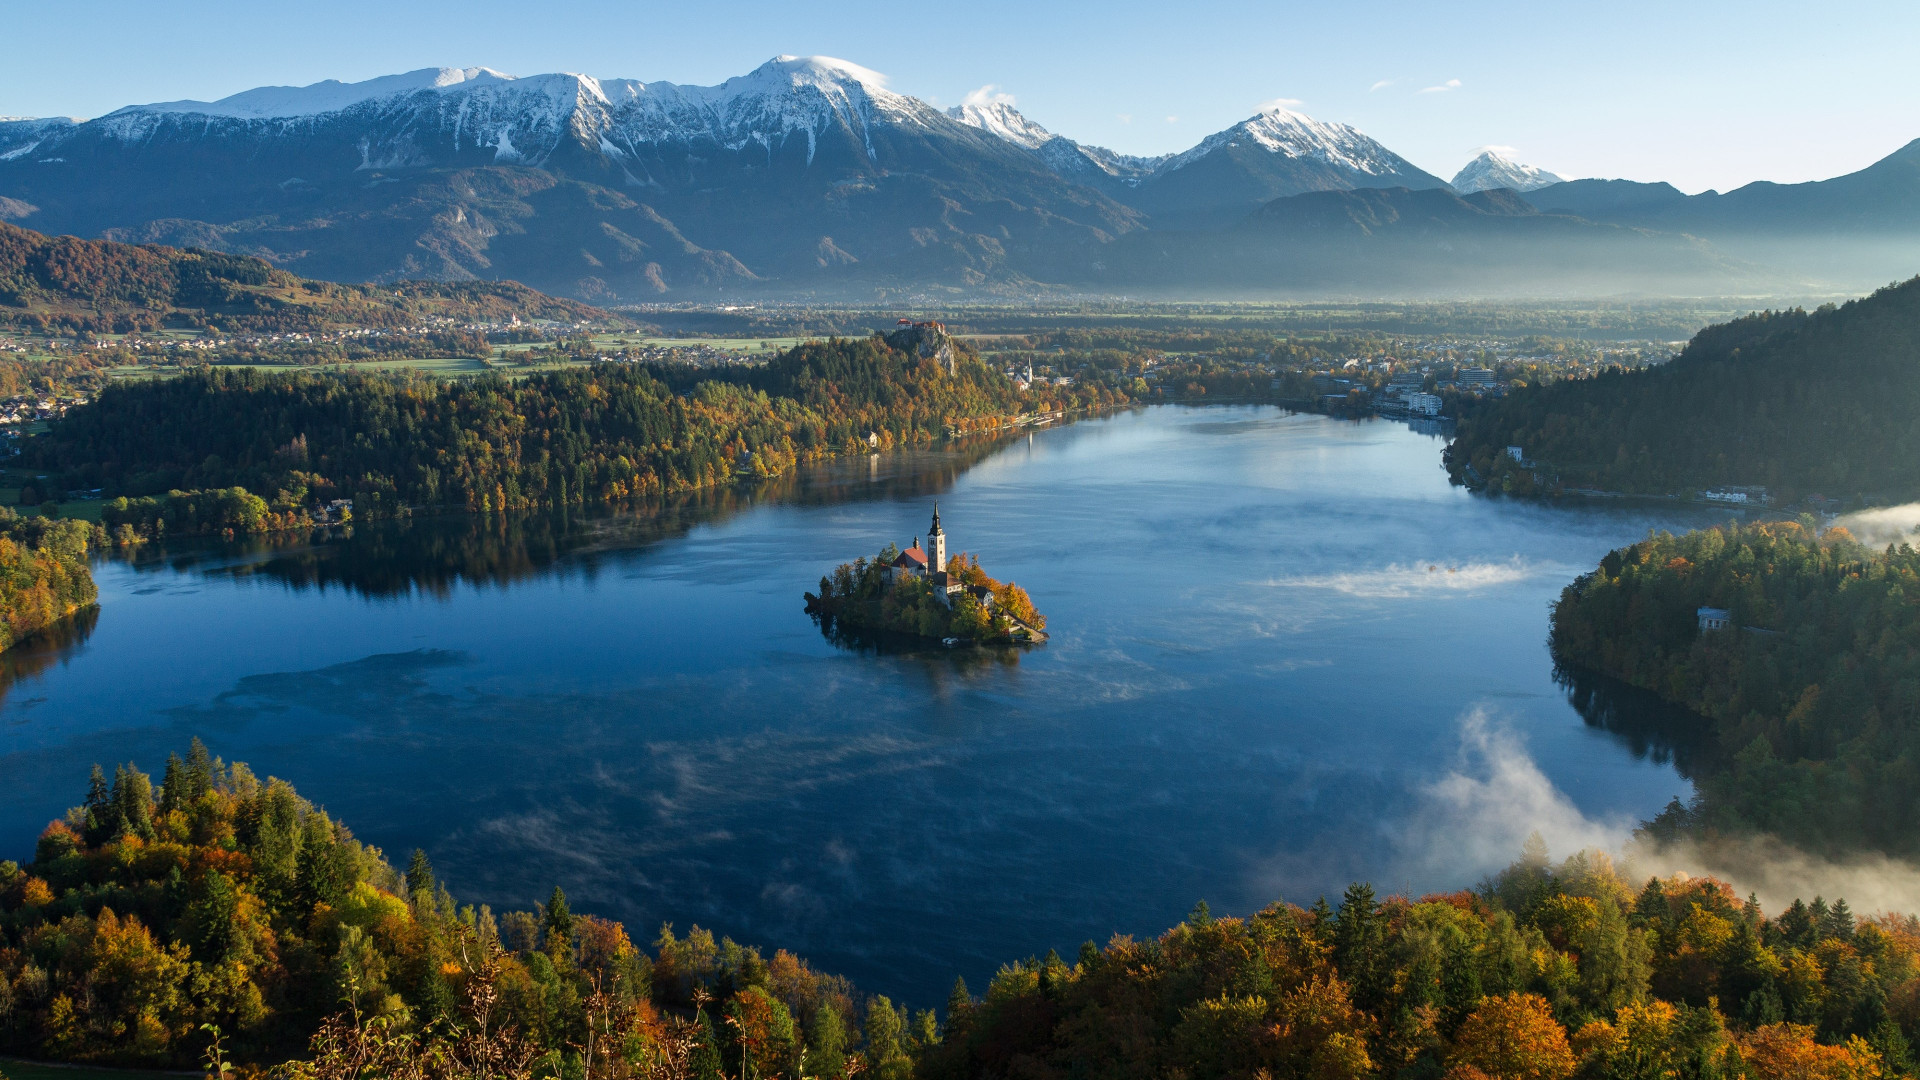 Download Wallpaper Best Landscape From Bled Slovenia 1920x1080